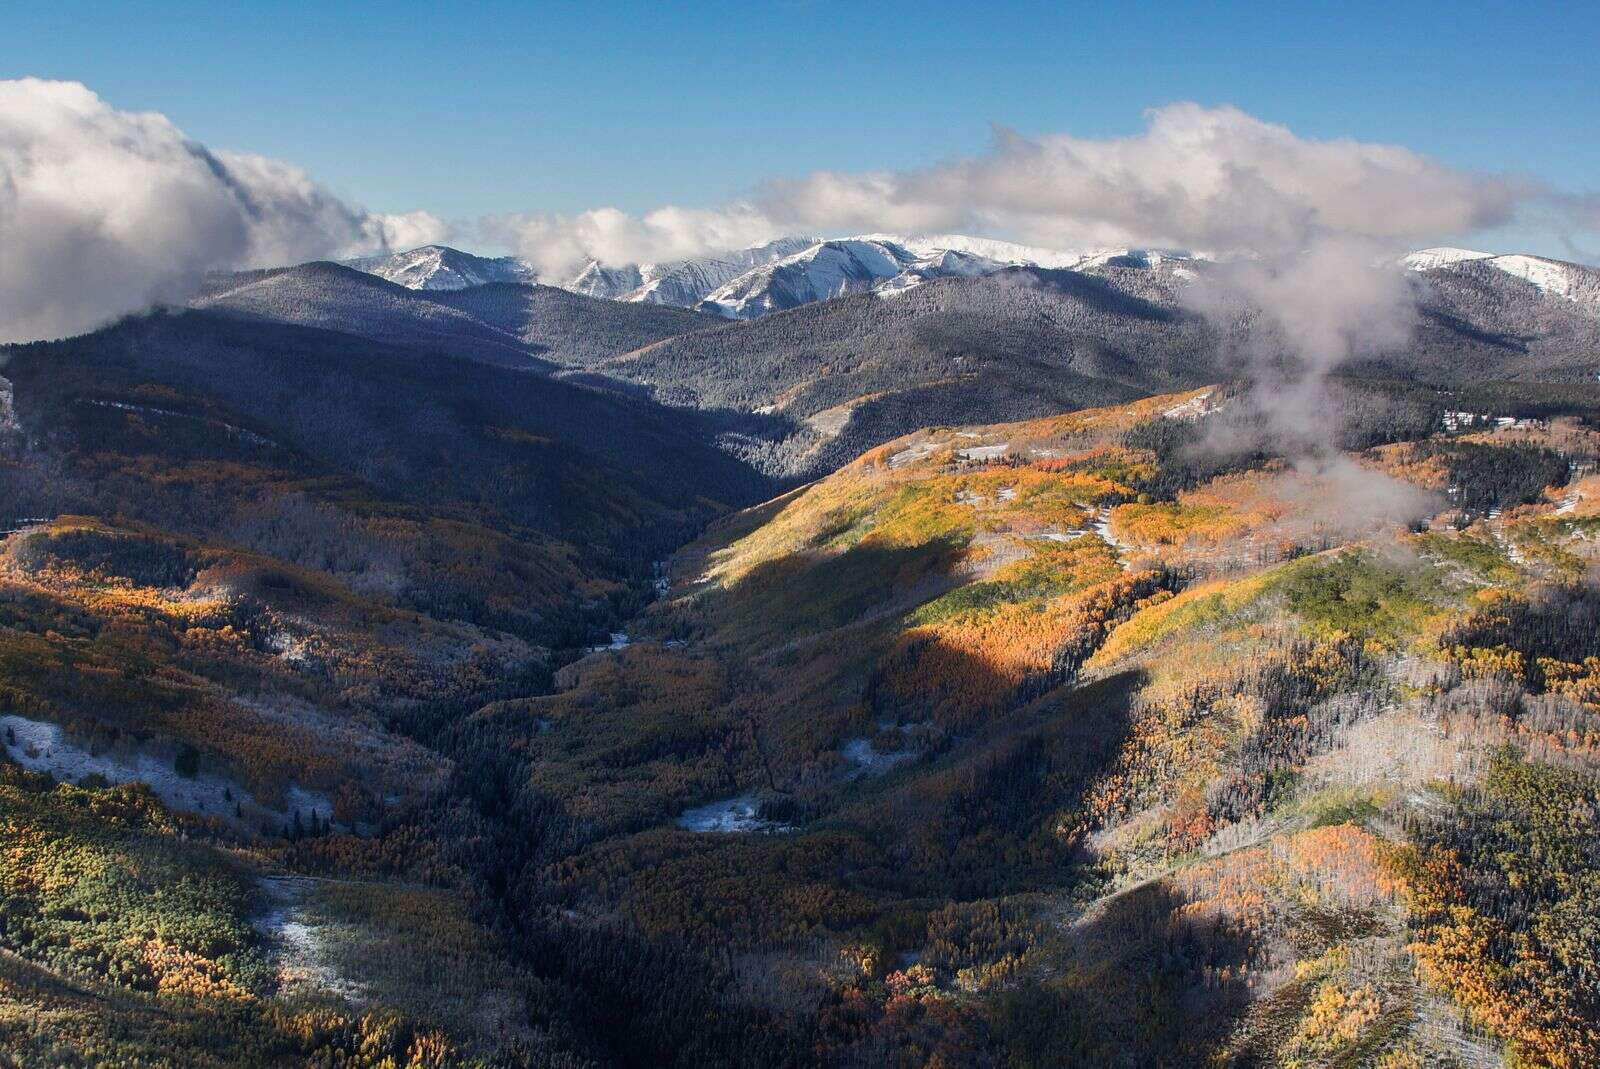 Public lands bill provides protection on 200,000 acres of Thompson Divide